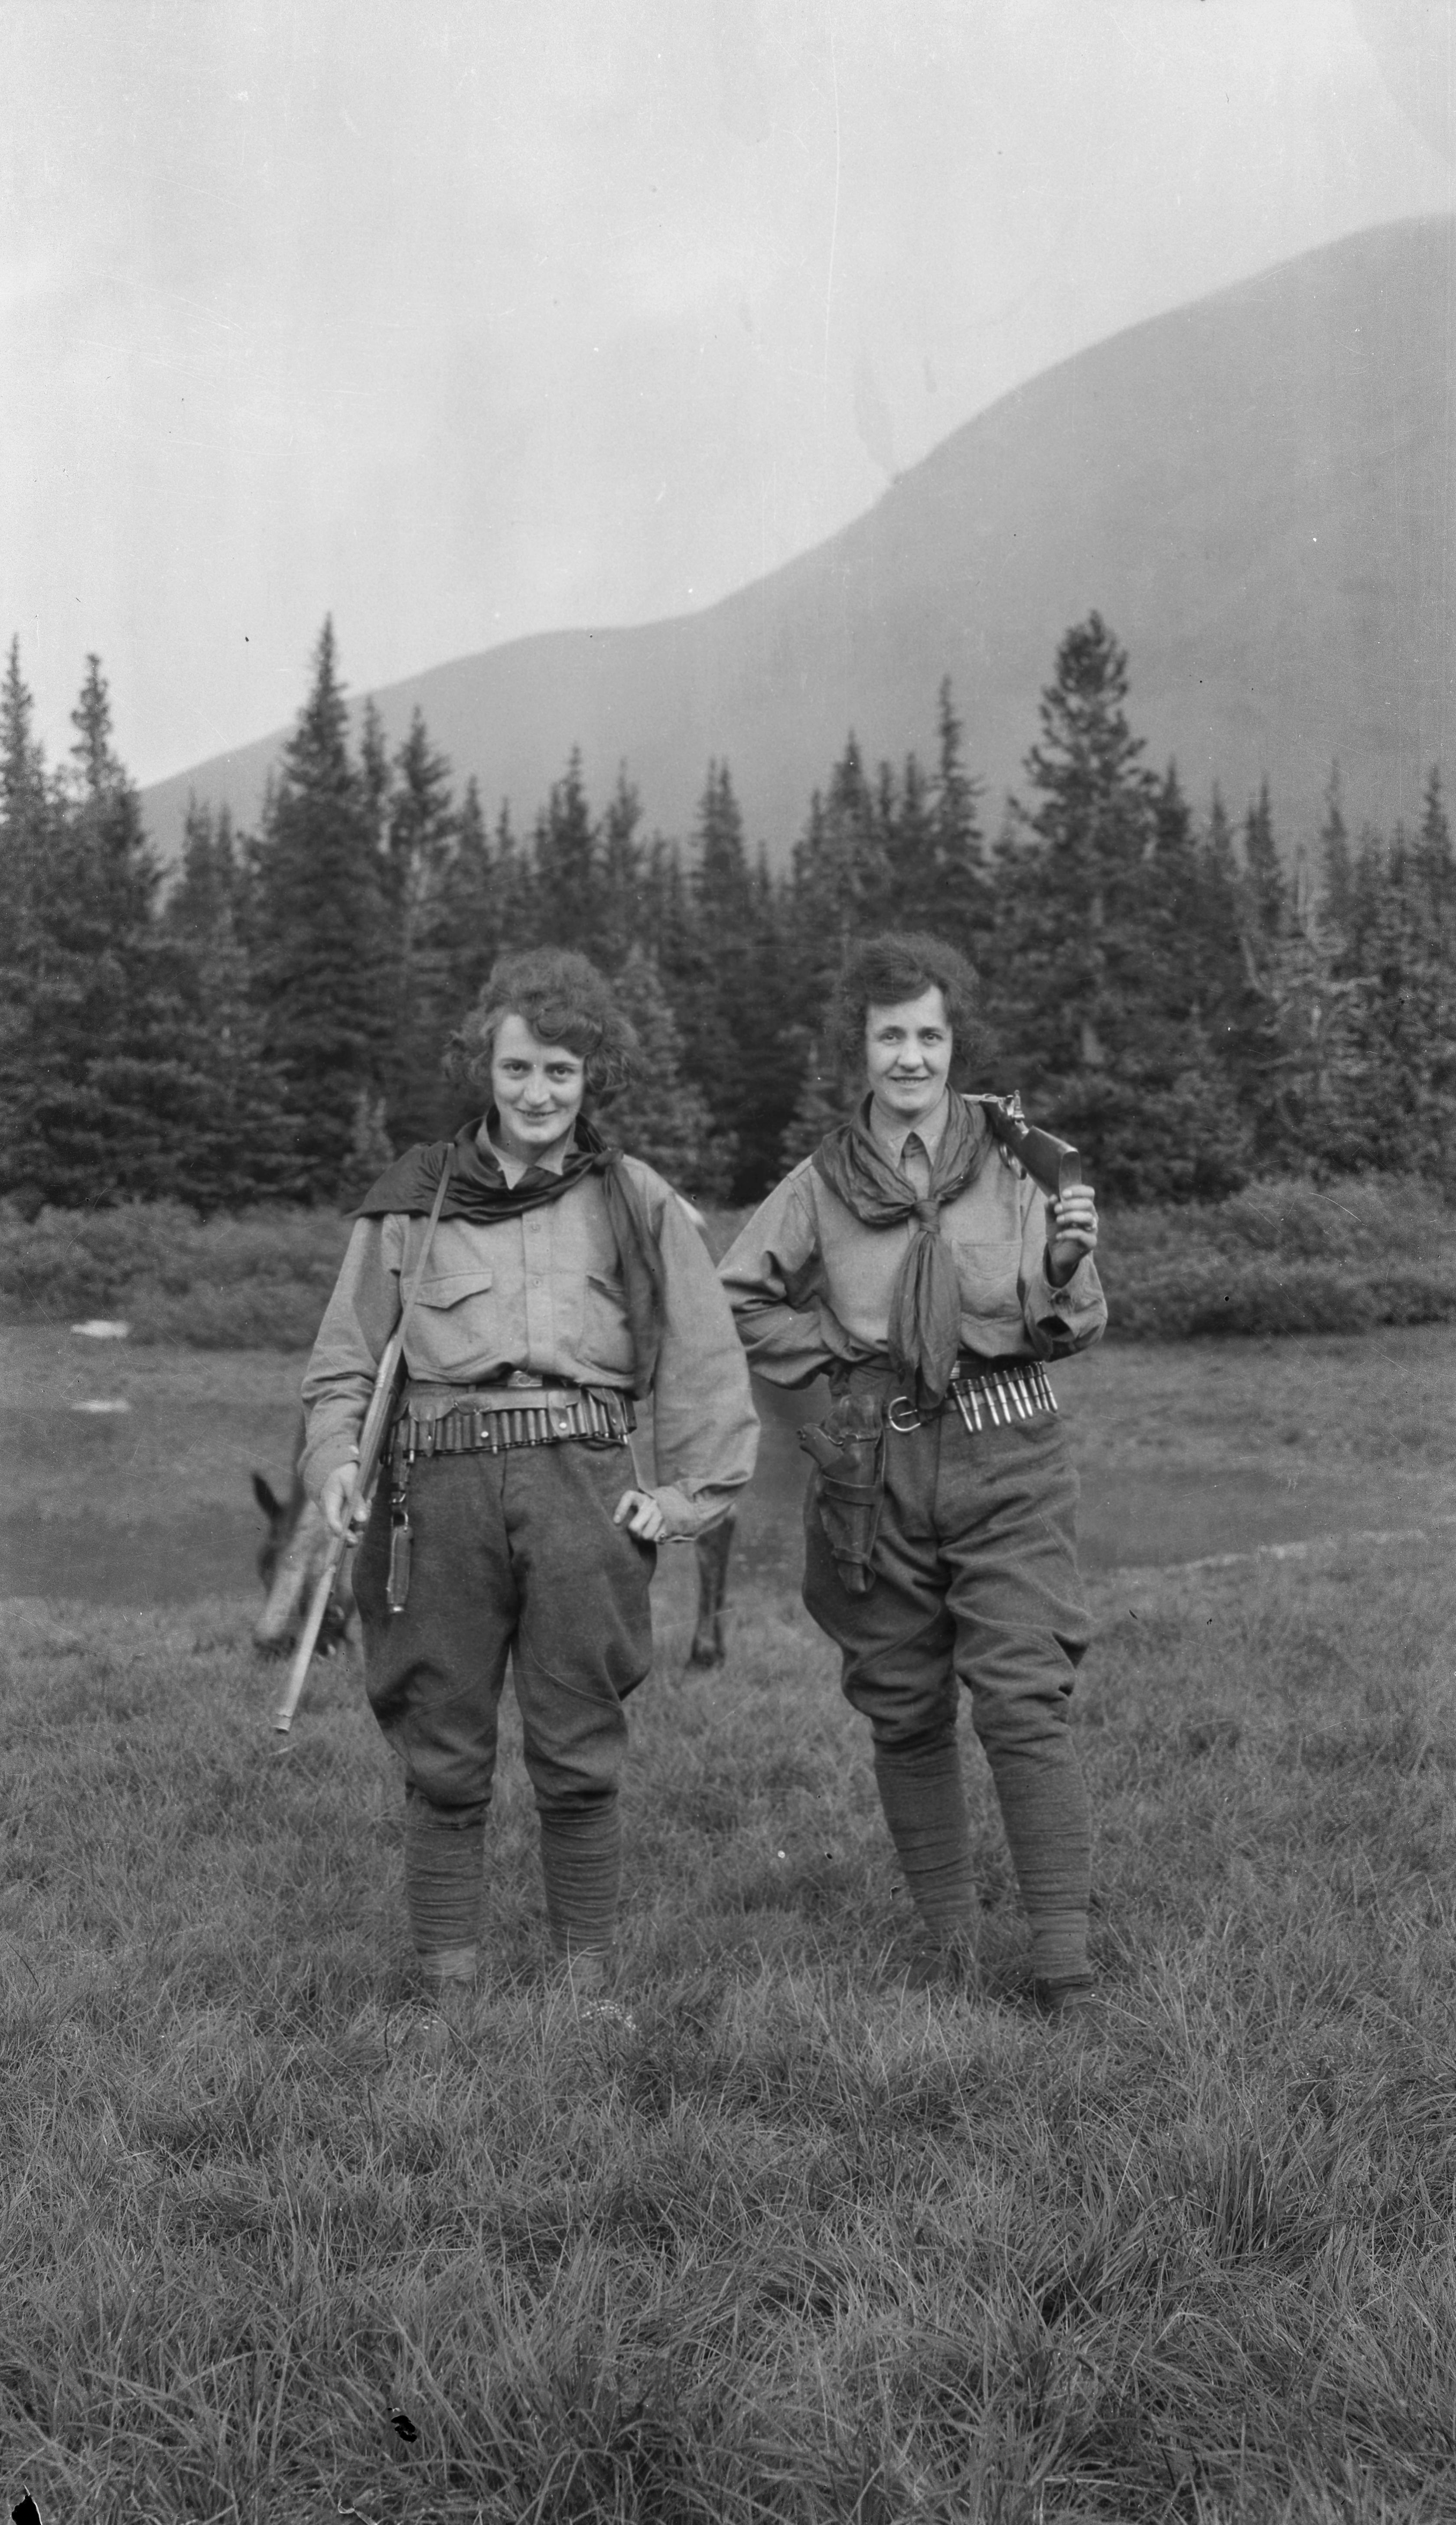 Two women on a trek with rifles and cartridge belts